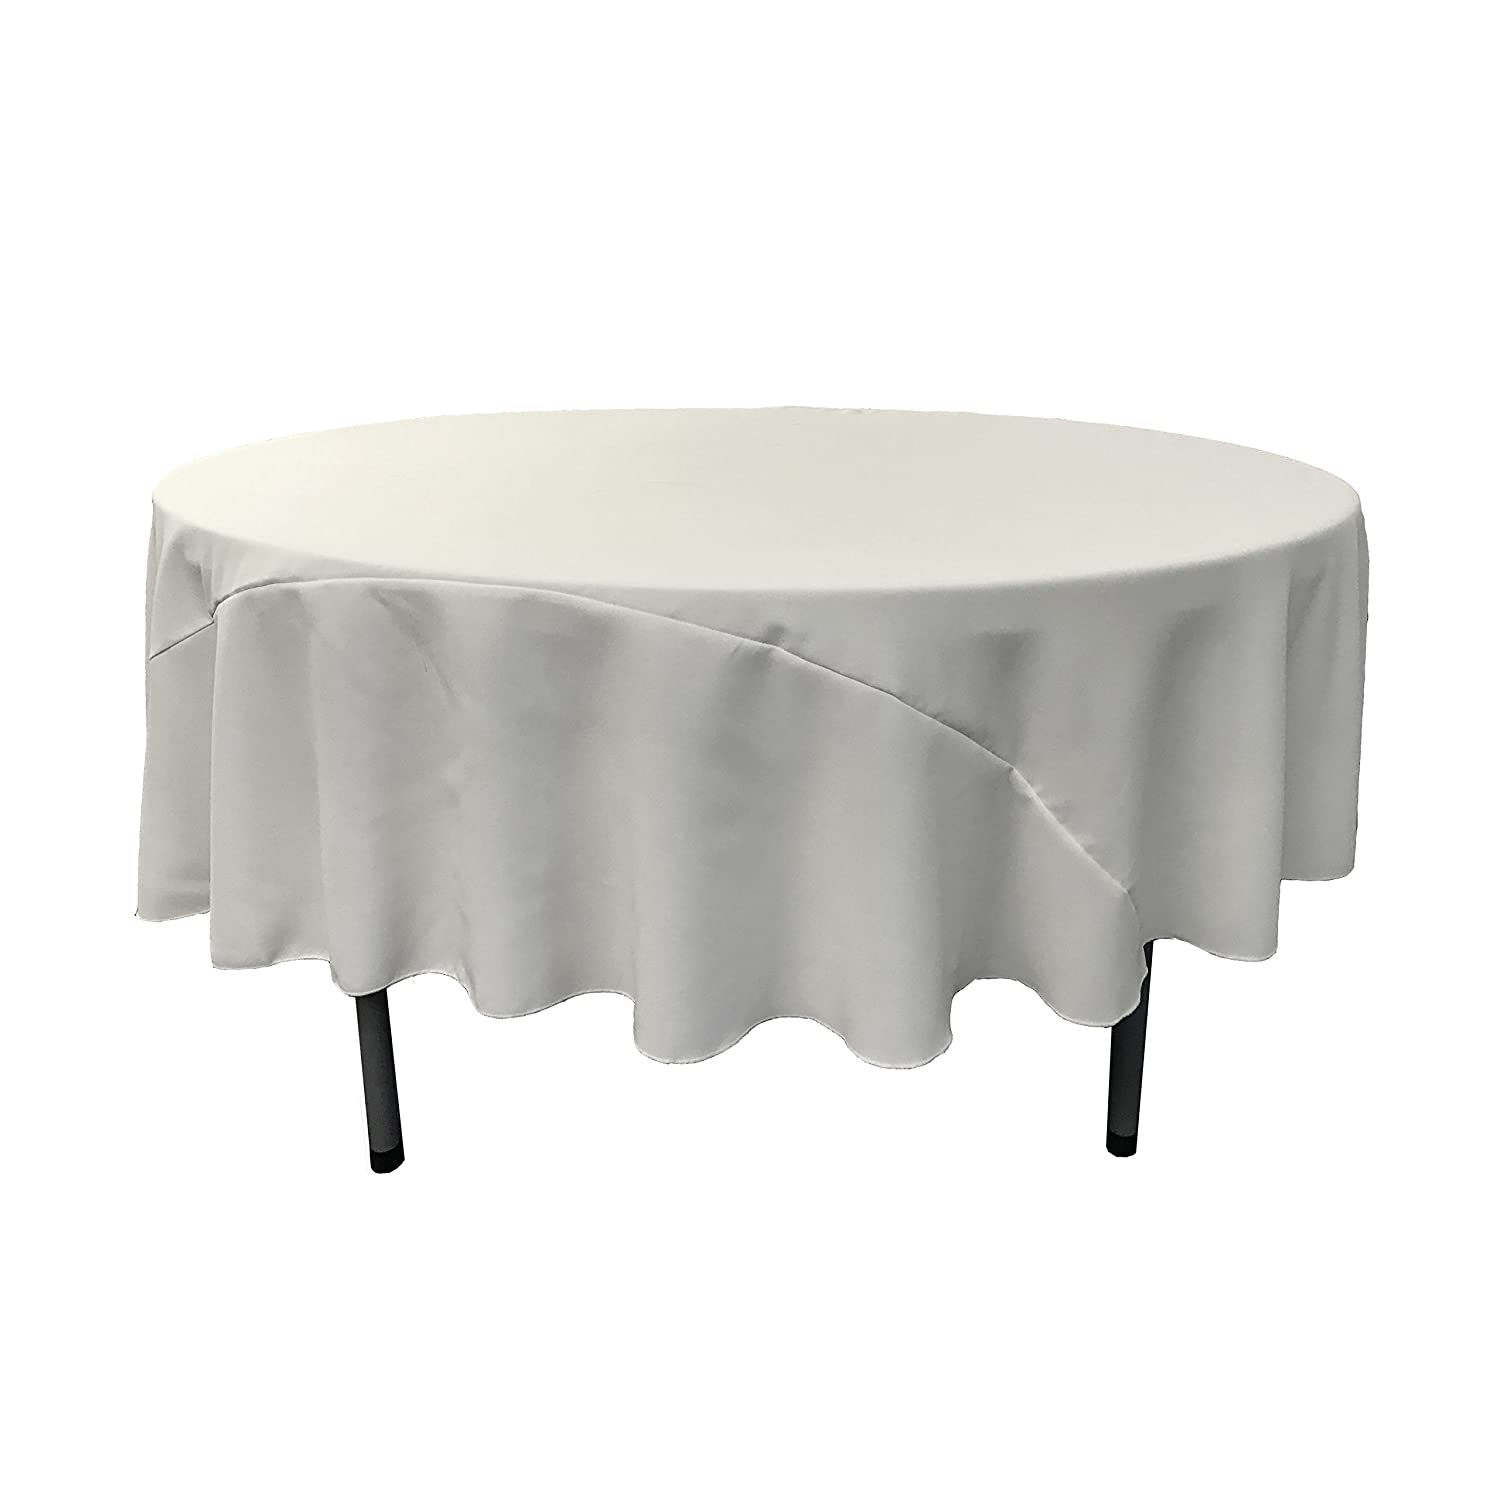 White round tablecloths cheap - Amazon Com La Linen 96 Inch Round Polyester Poplin Tablecloth Pack Of 1 White Everything Else